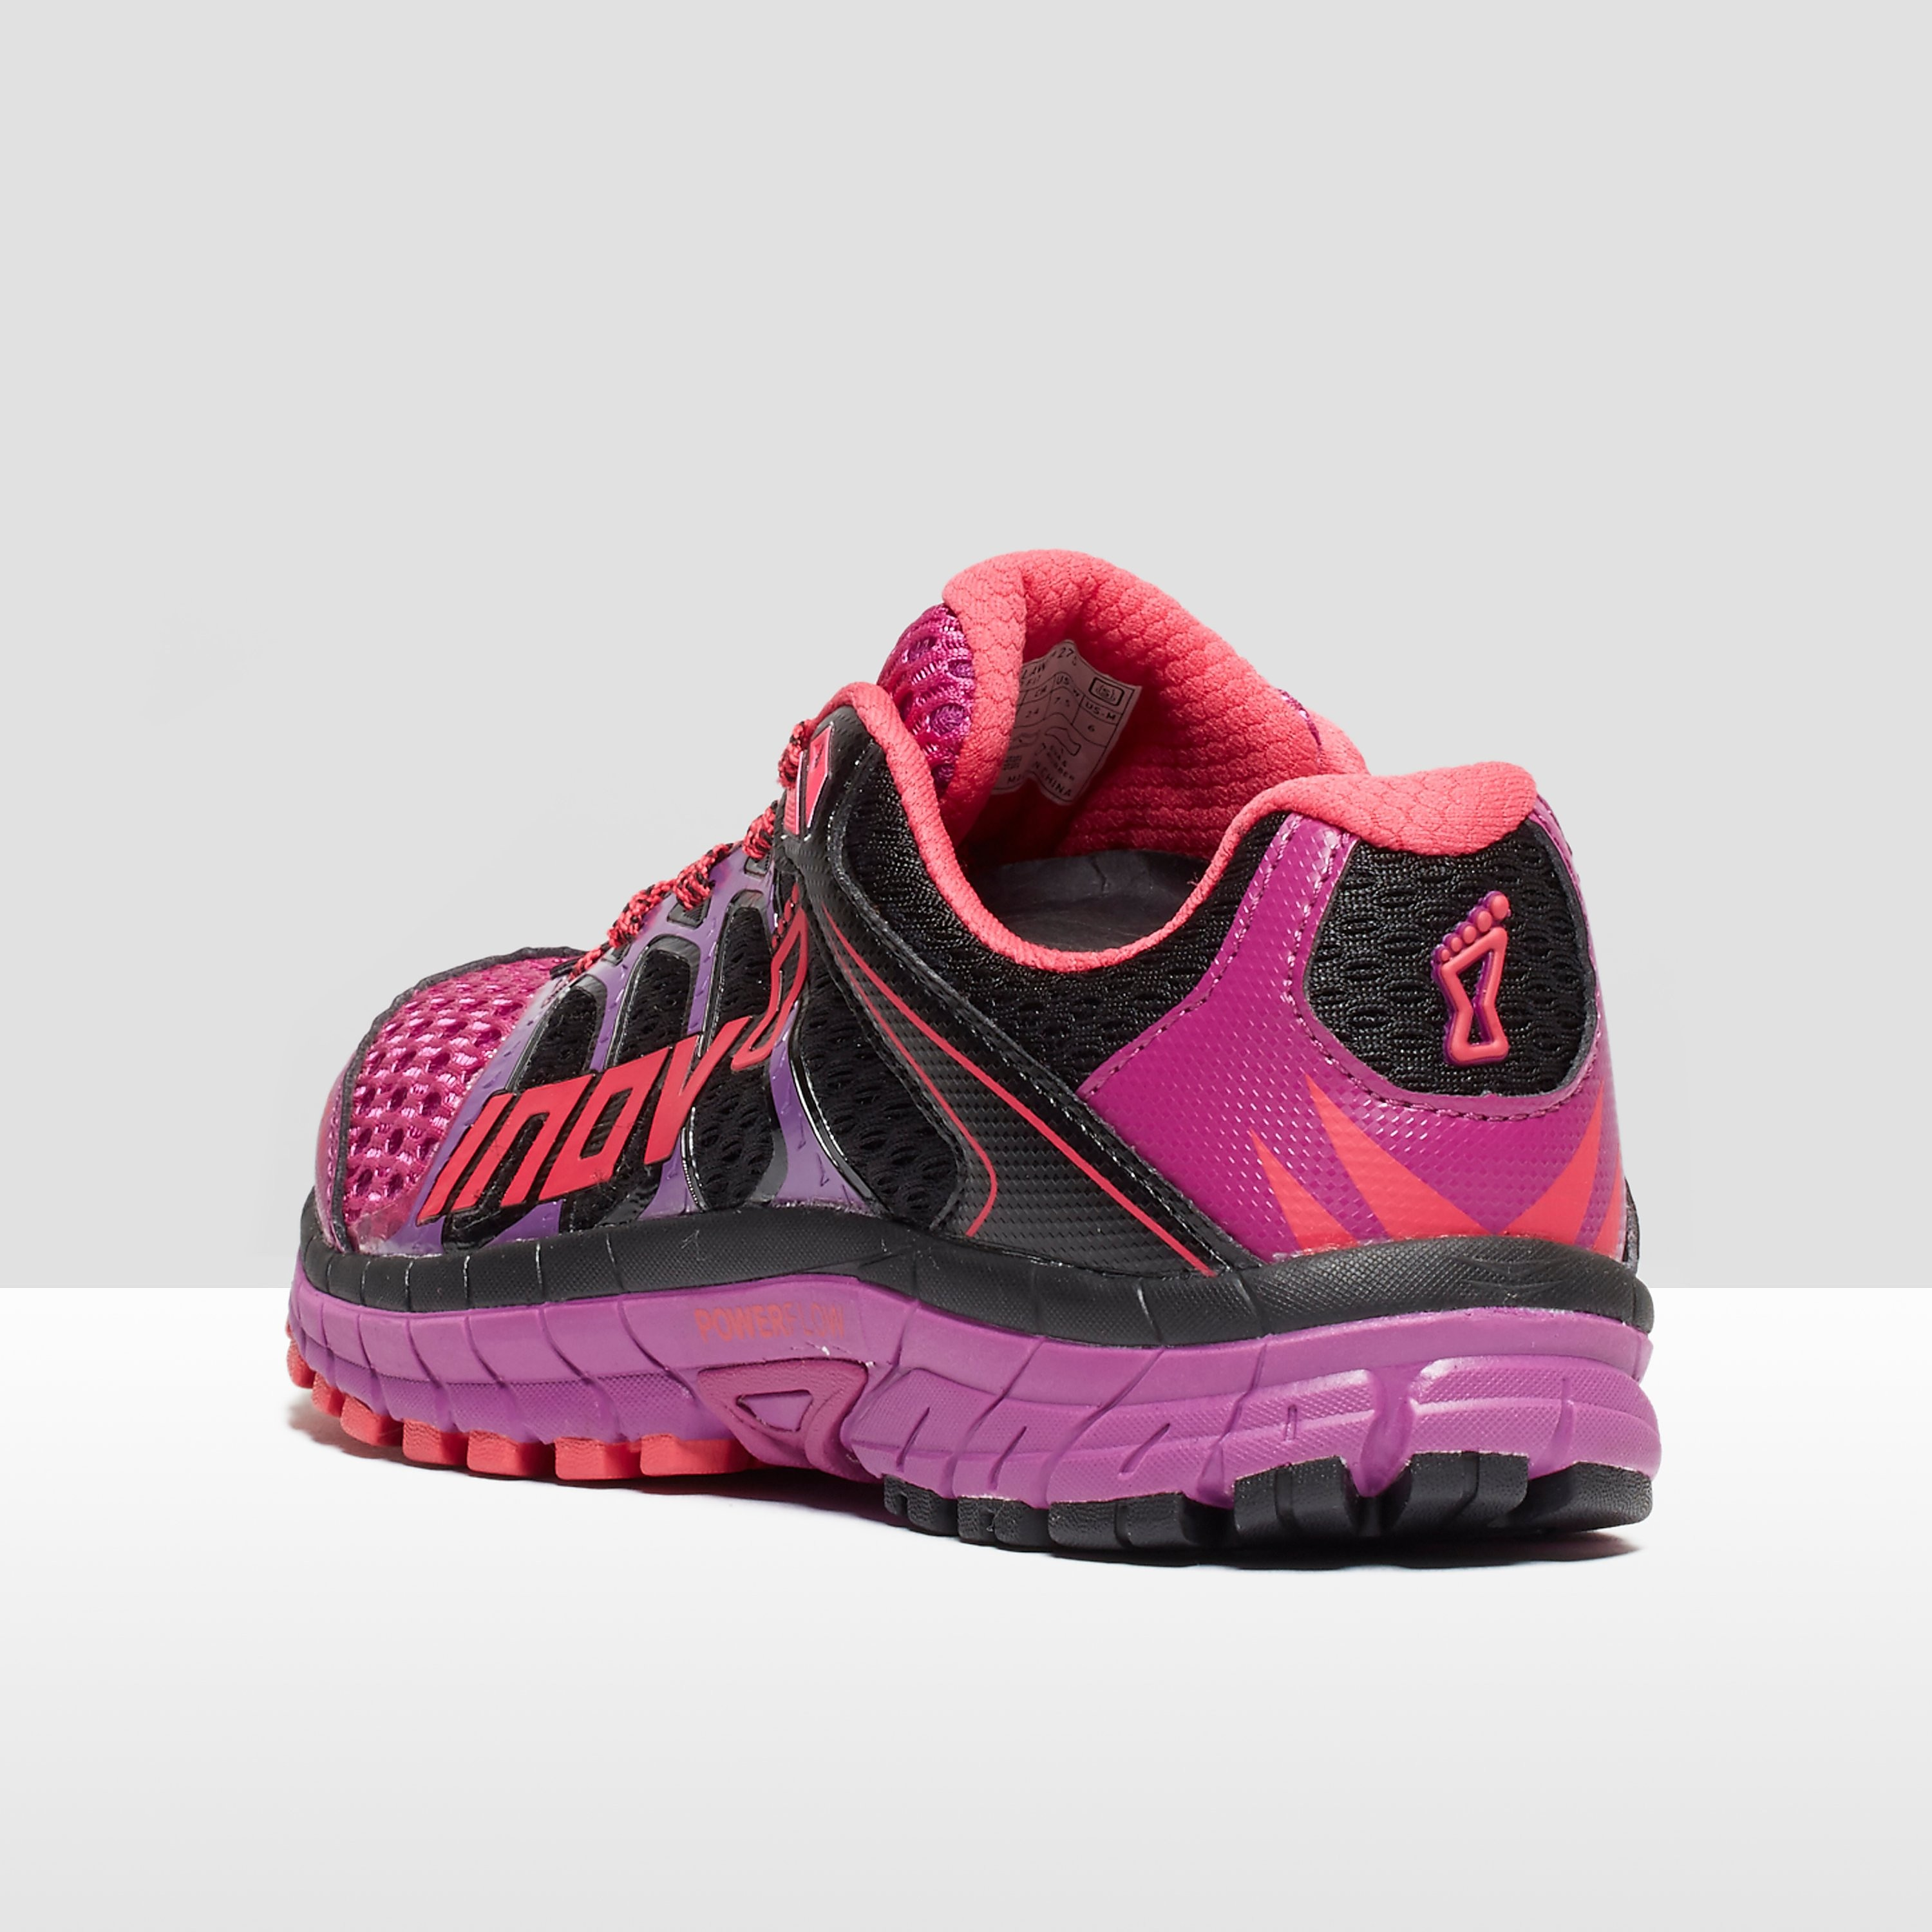 Inov-8 ROADCLAW 275 women's running shoes